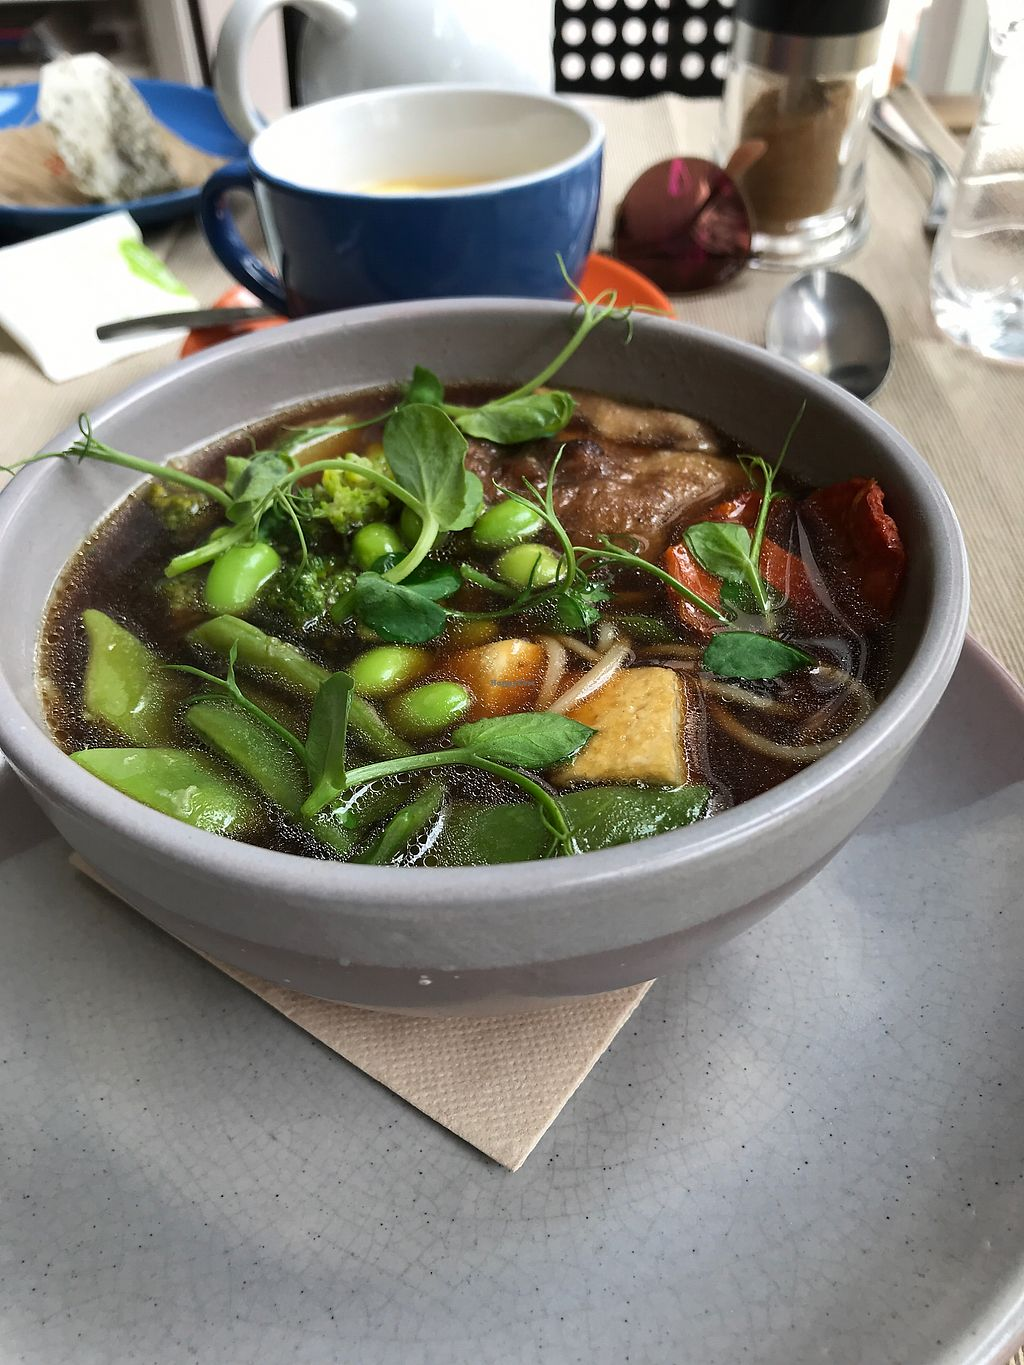 "Photo of Buenavida Vegan  by <a href=""/members/profile/Andoolblu"">Andoolblu</a> <br/>Ramen <br/> February 24, 2018  - <a href='/contact/abuse/image/64893/363204'>Report</a>"